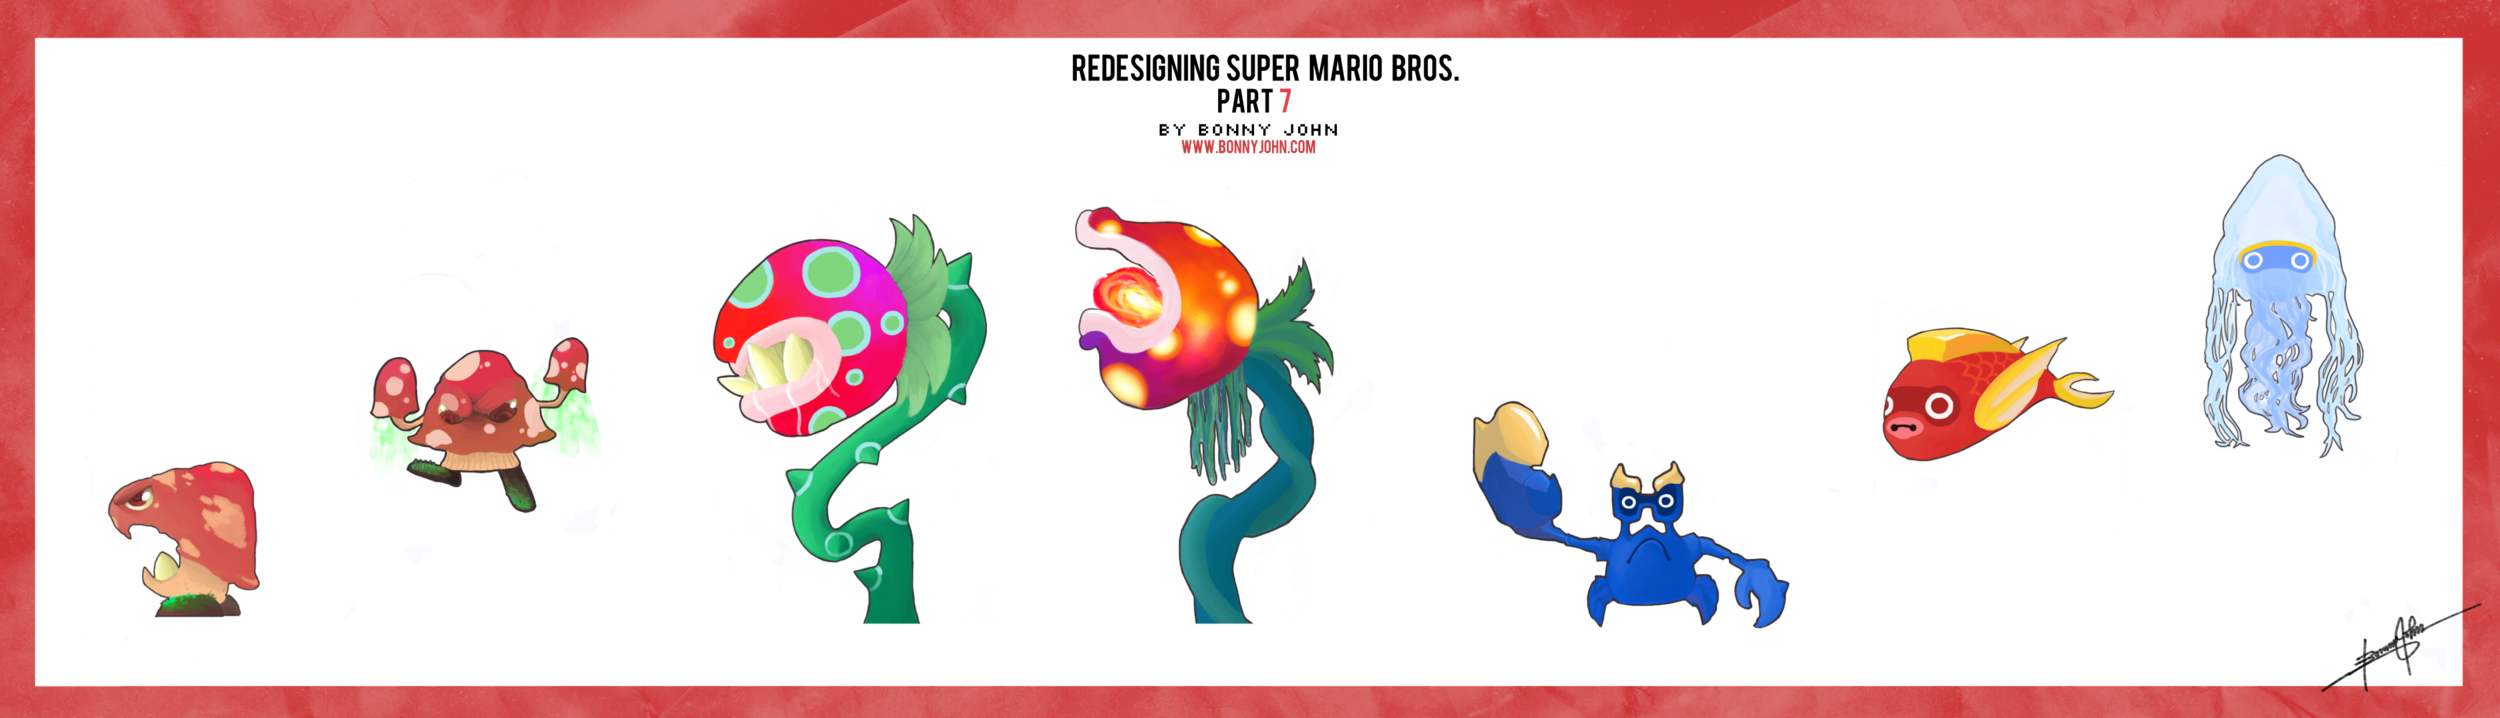 Redesigning Super Mario Part 7 by Bonny John.png